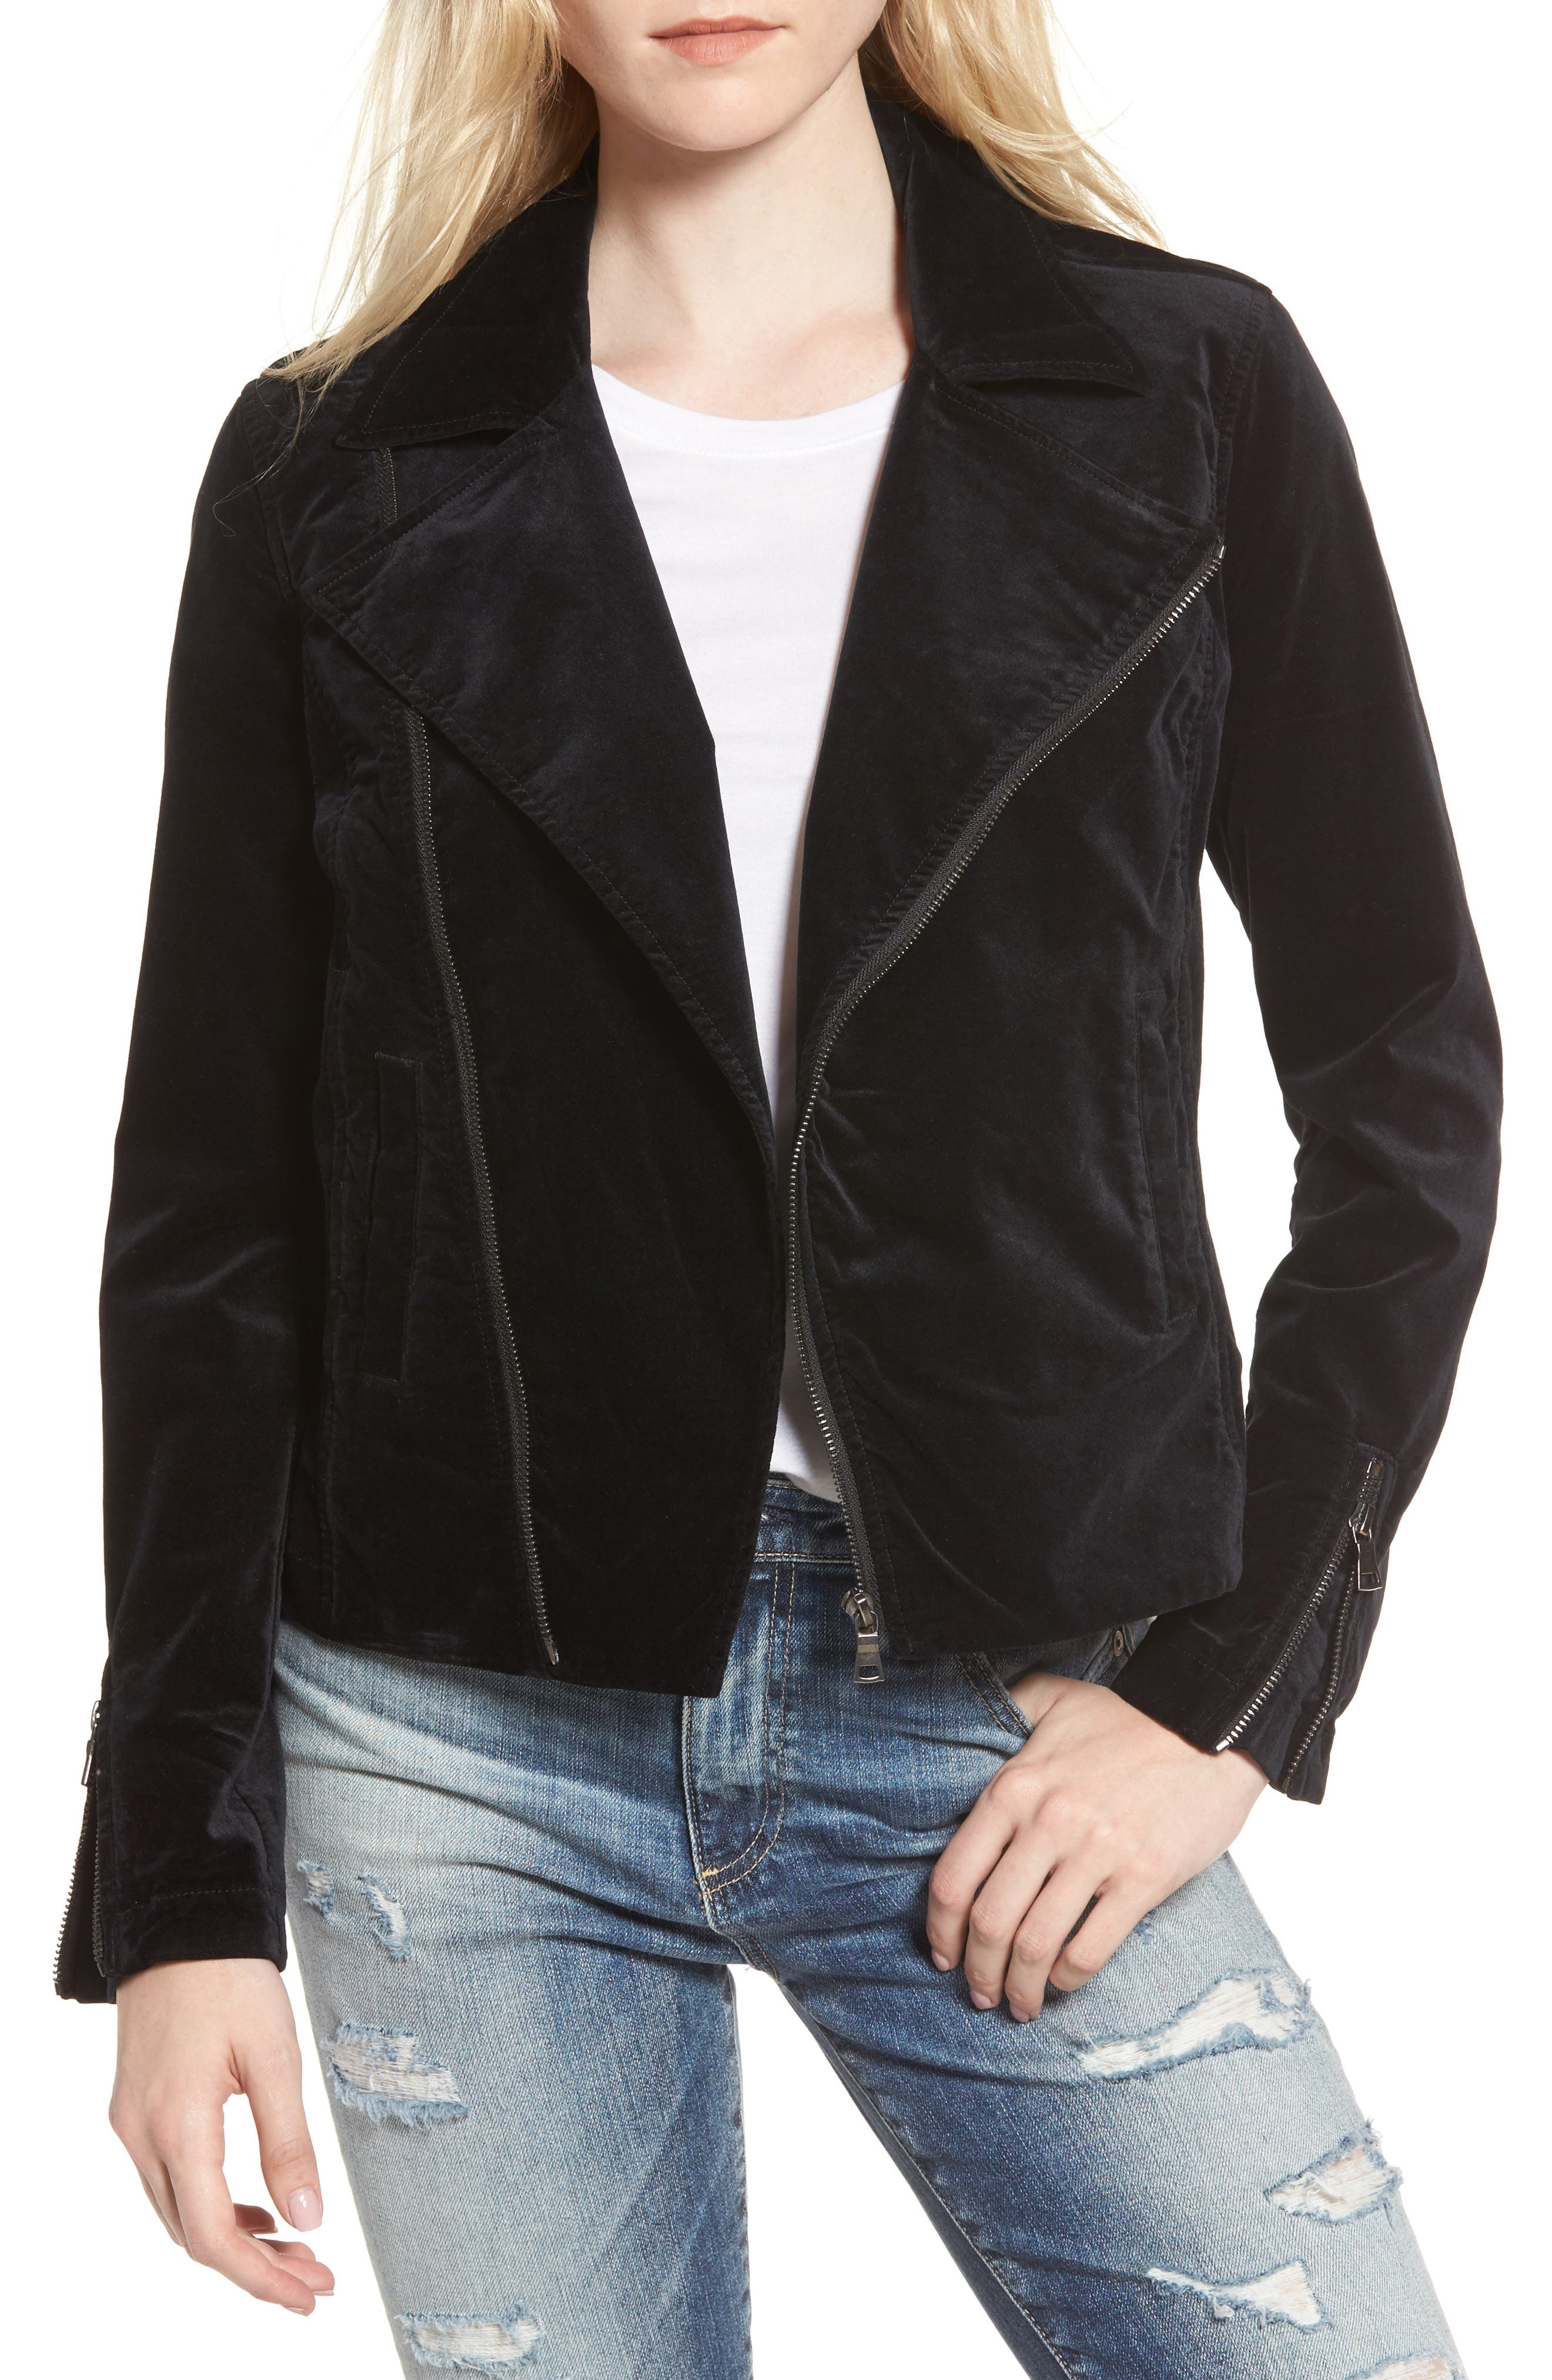 Quincy Velvet Biker Jacket,                         Main,                         color, 001